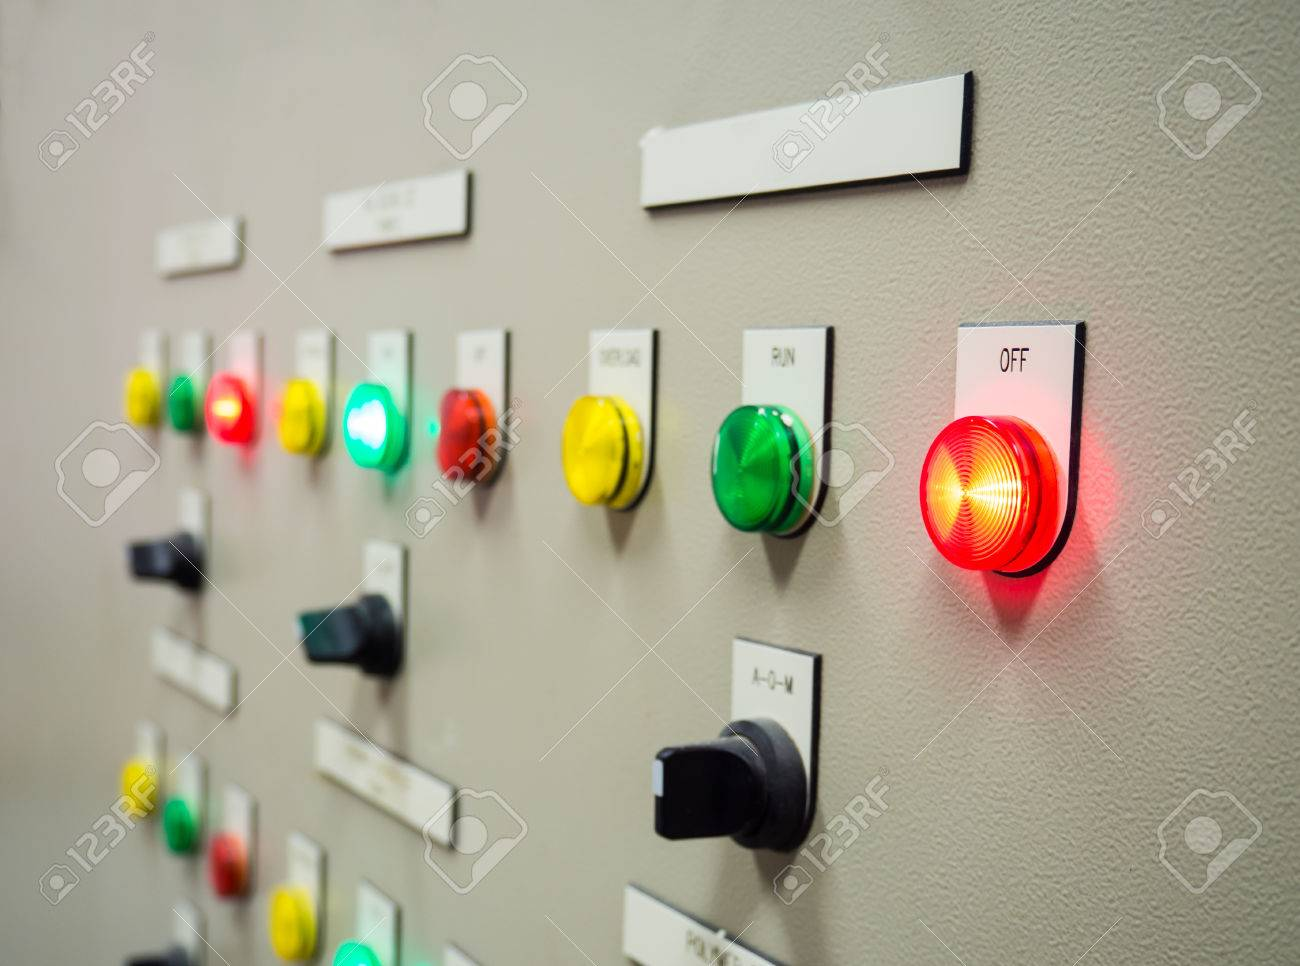 Group Of Status Indicator Light And Selective Switch Of Auto-Manual ...